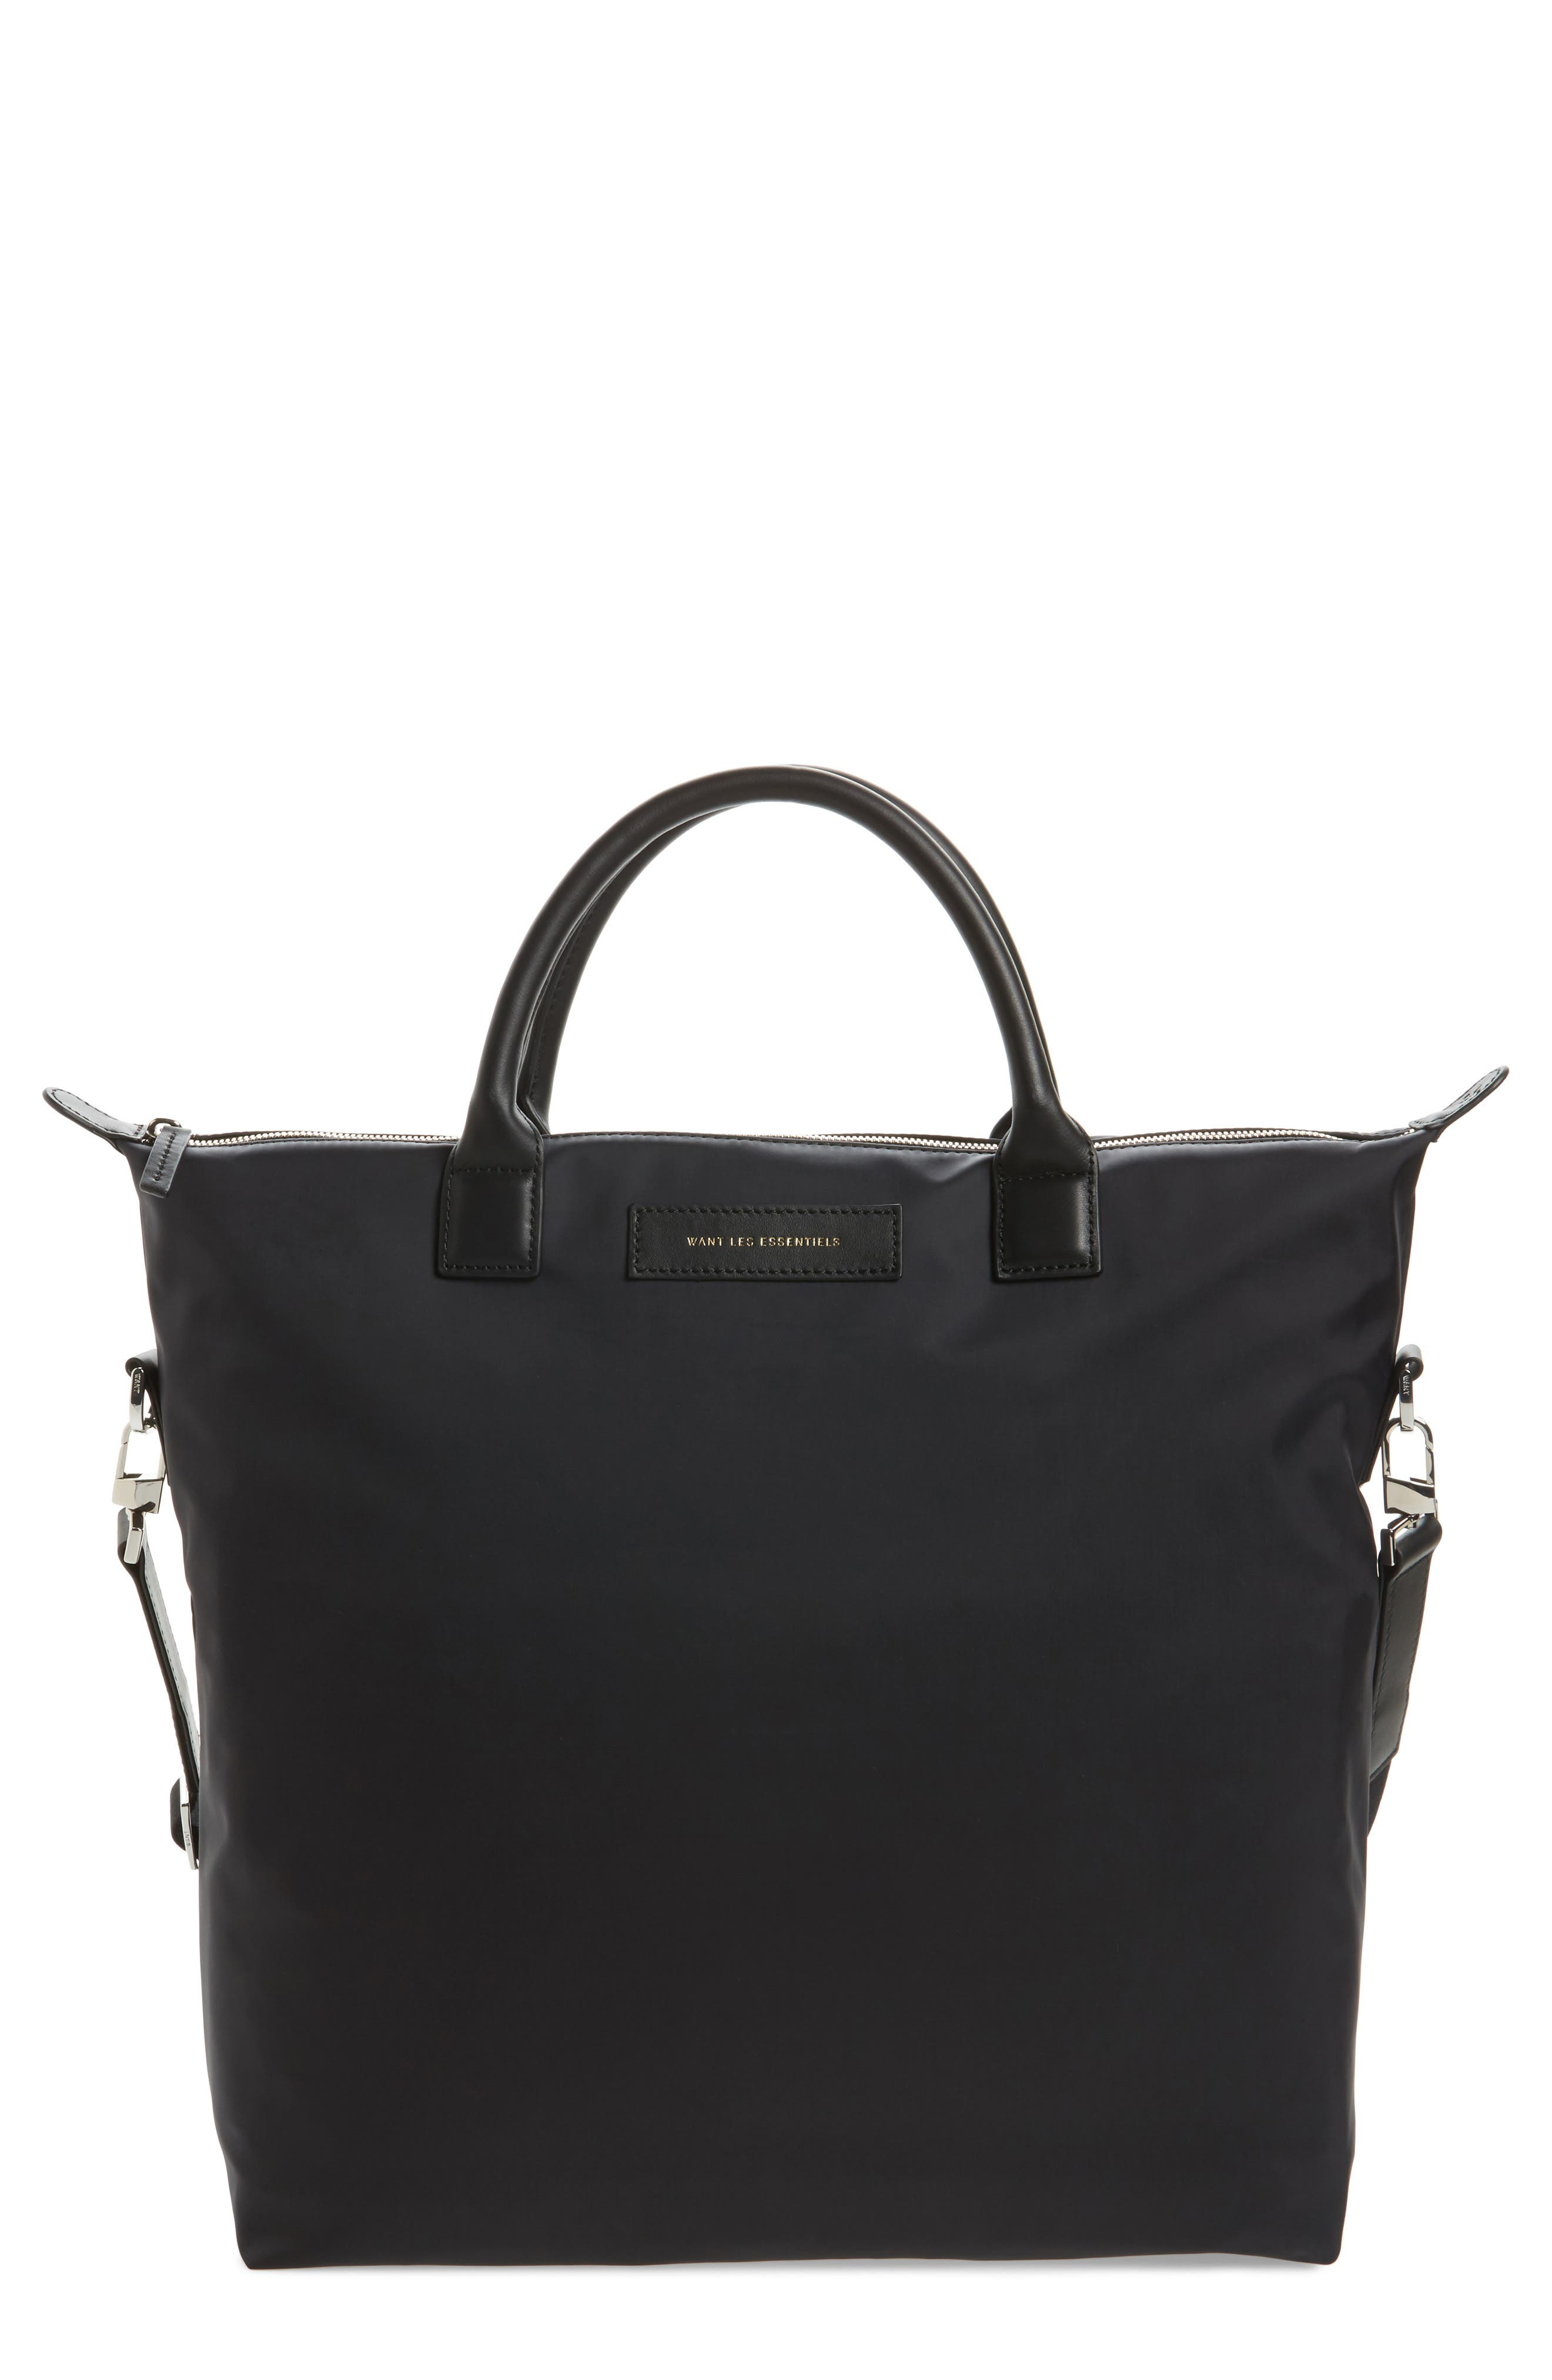 Alternate Image 1 Selected - WANT LES ESSENTIELS O'Hare Shopper Tote